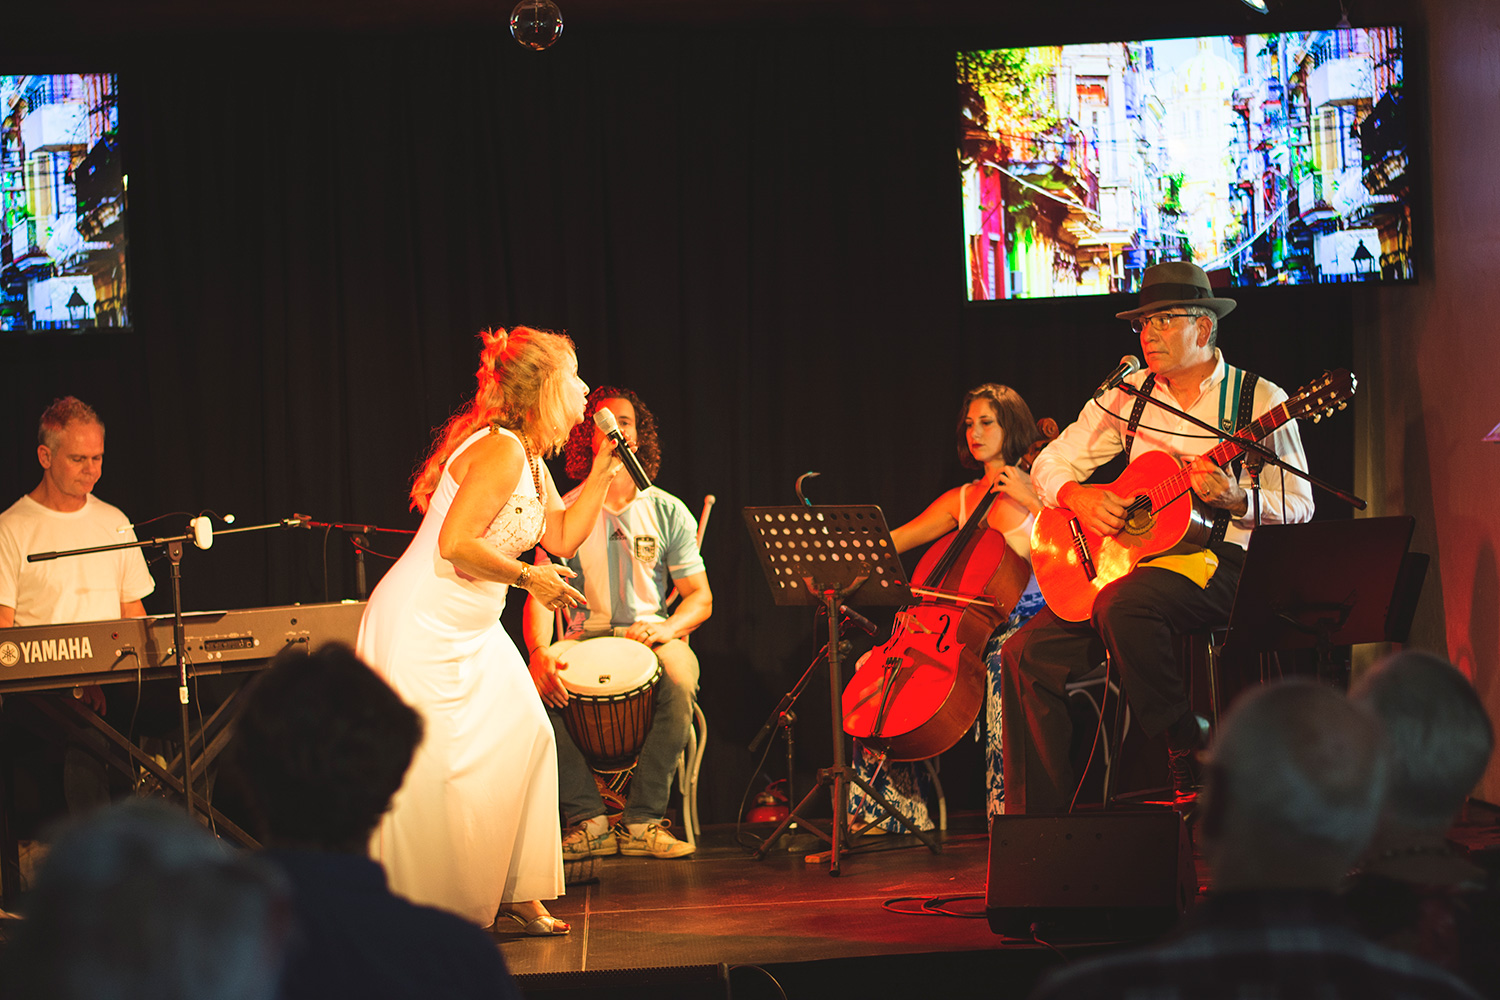 Tango band in Cape Town